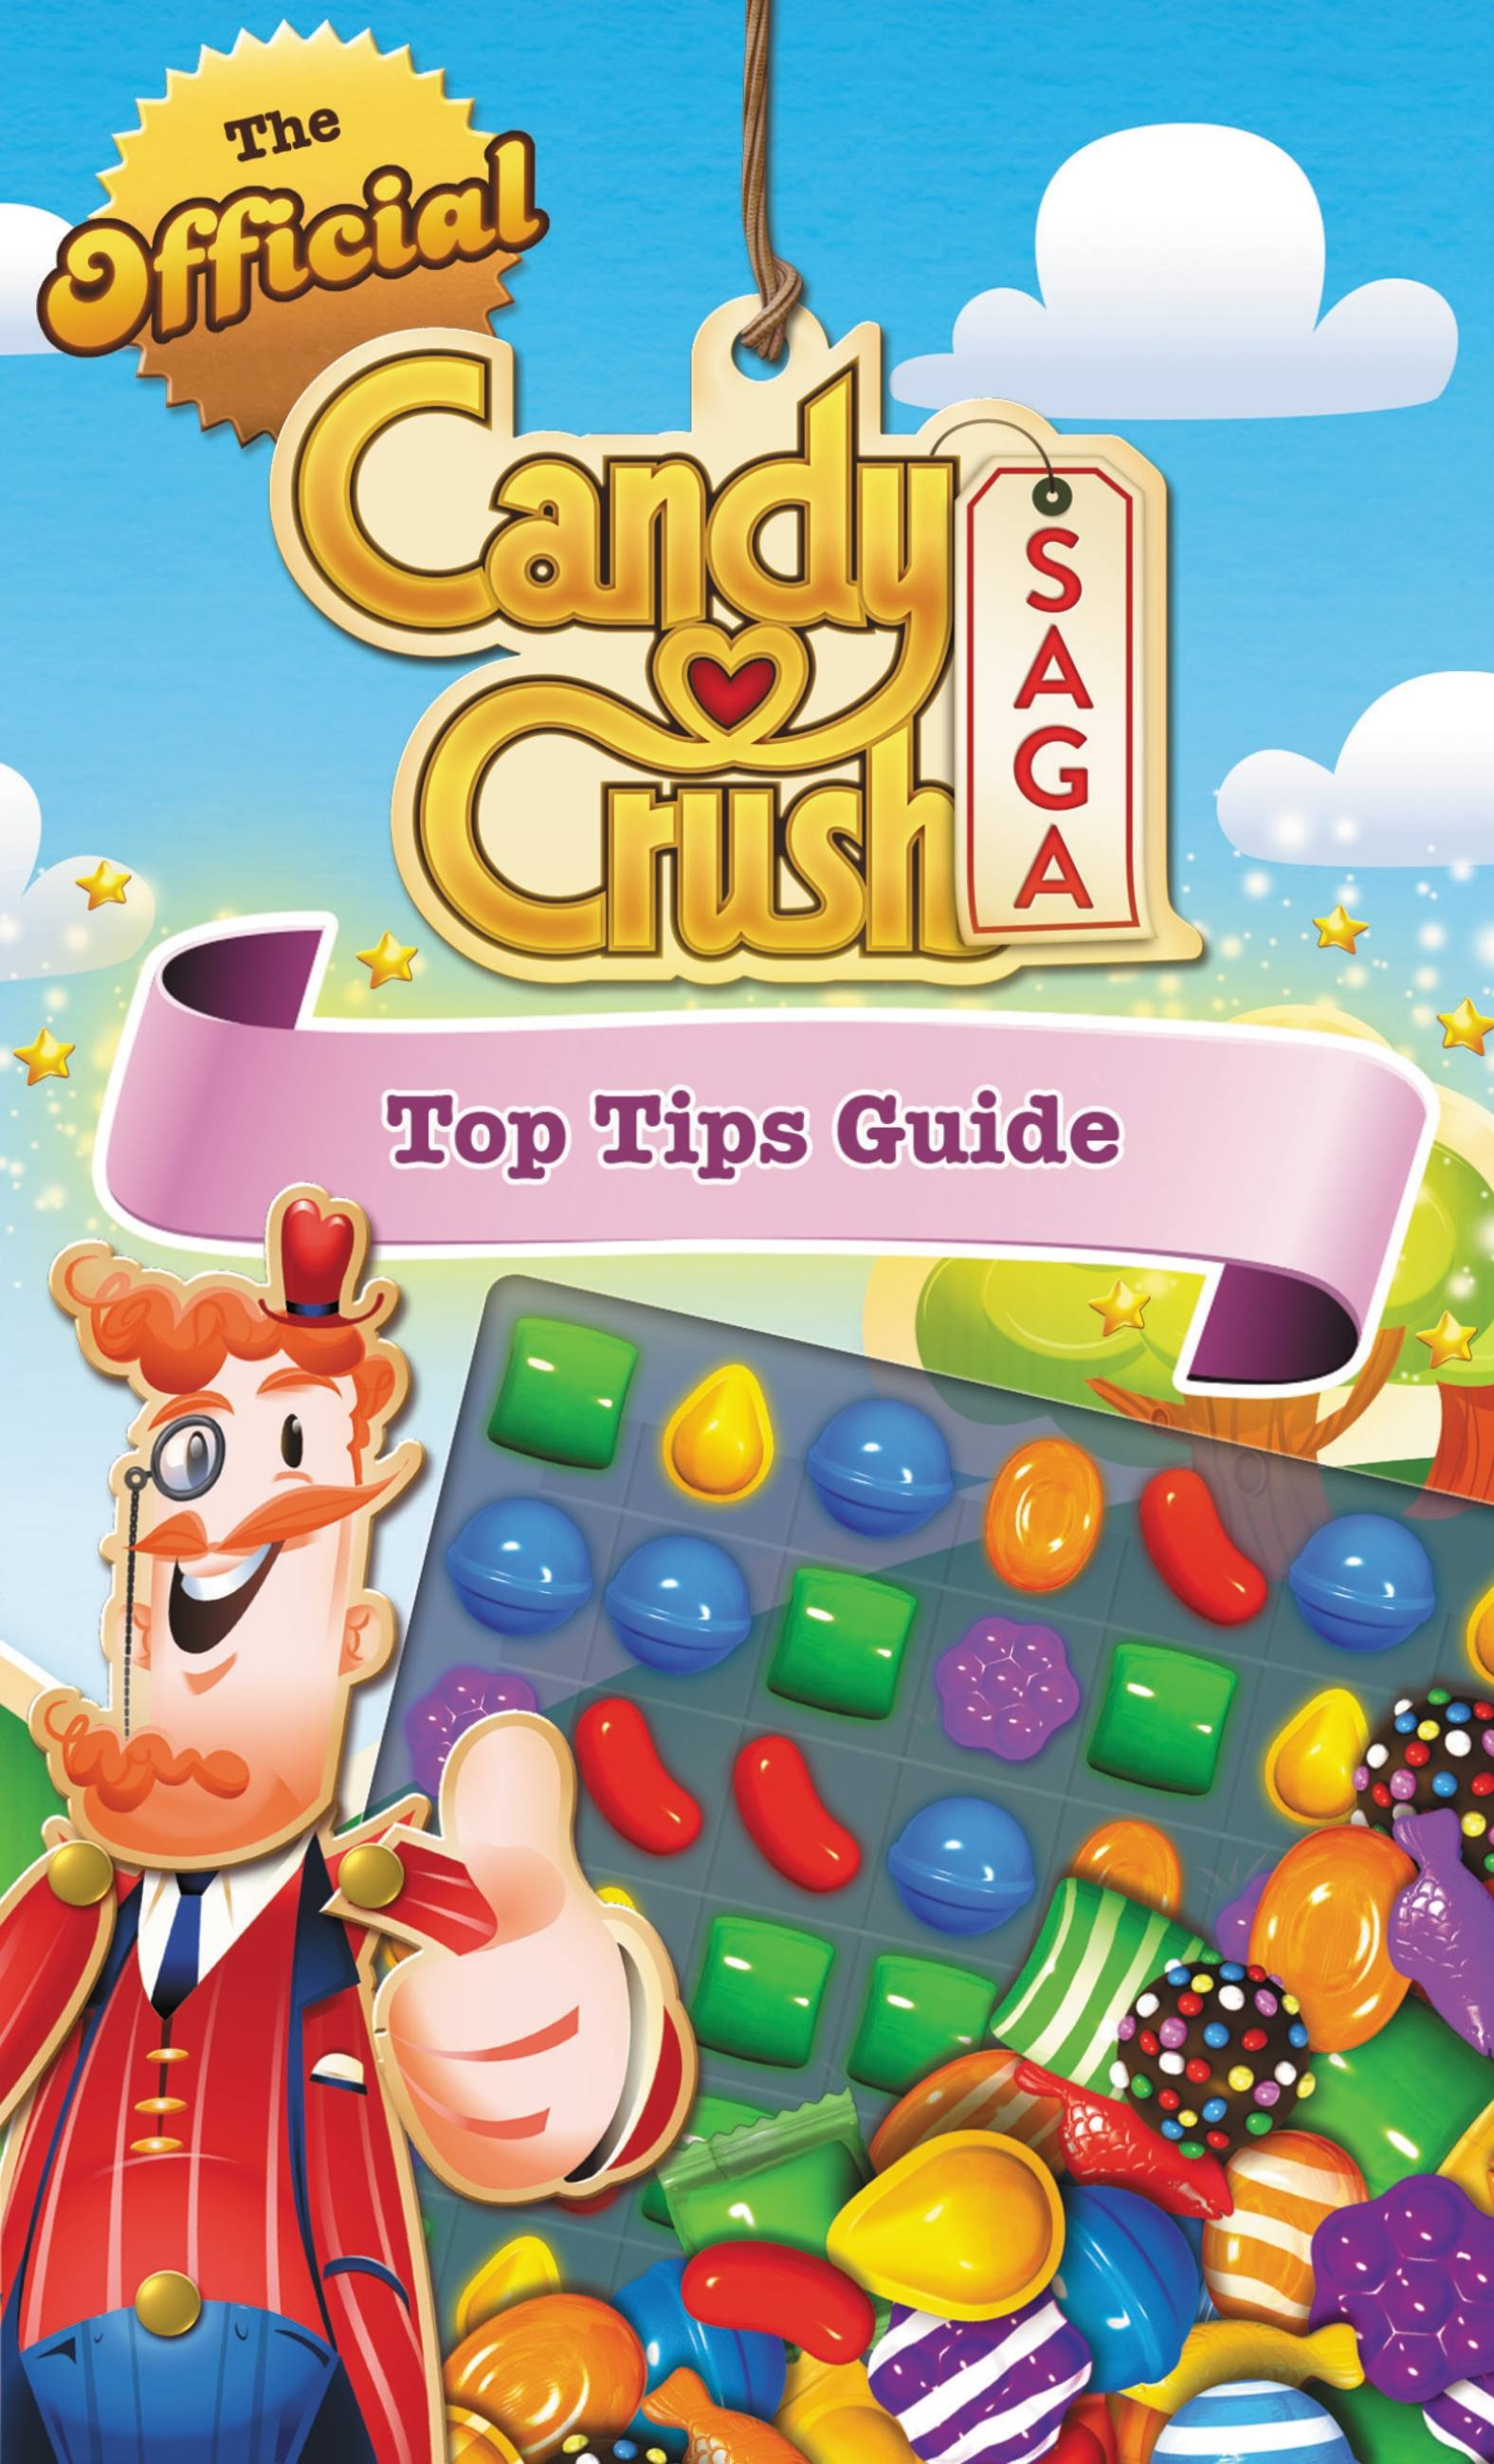 Coloring book with guide - The Candy Crush Adult Coloring Book The Official Candy Crush Saga Top Tips Guide